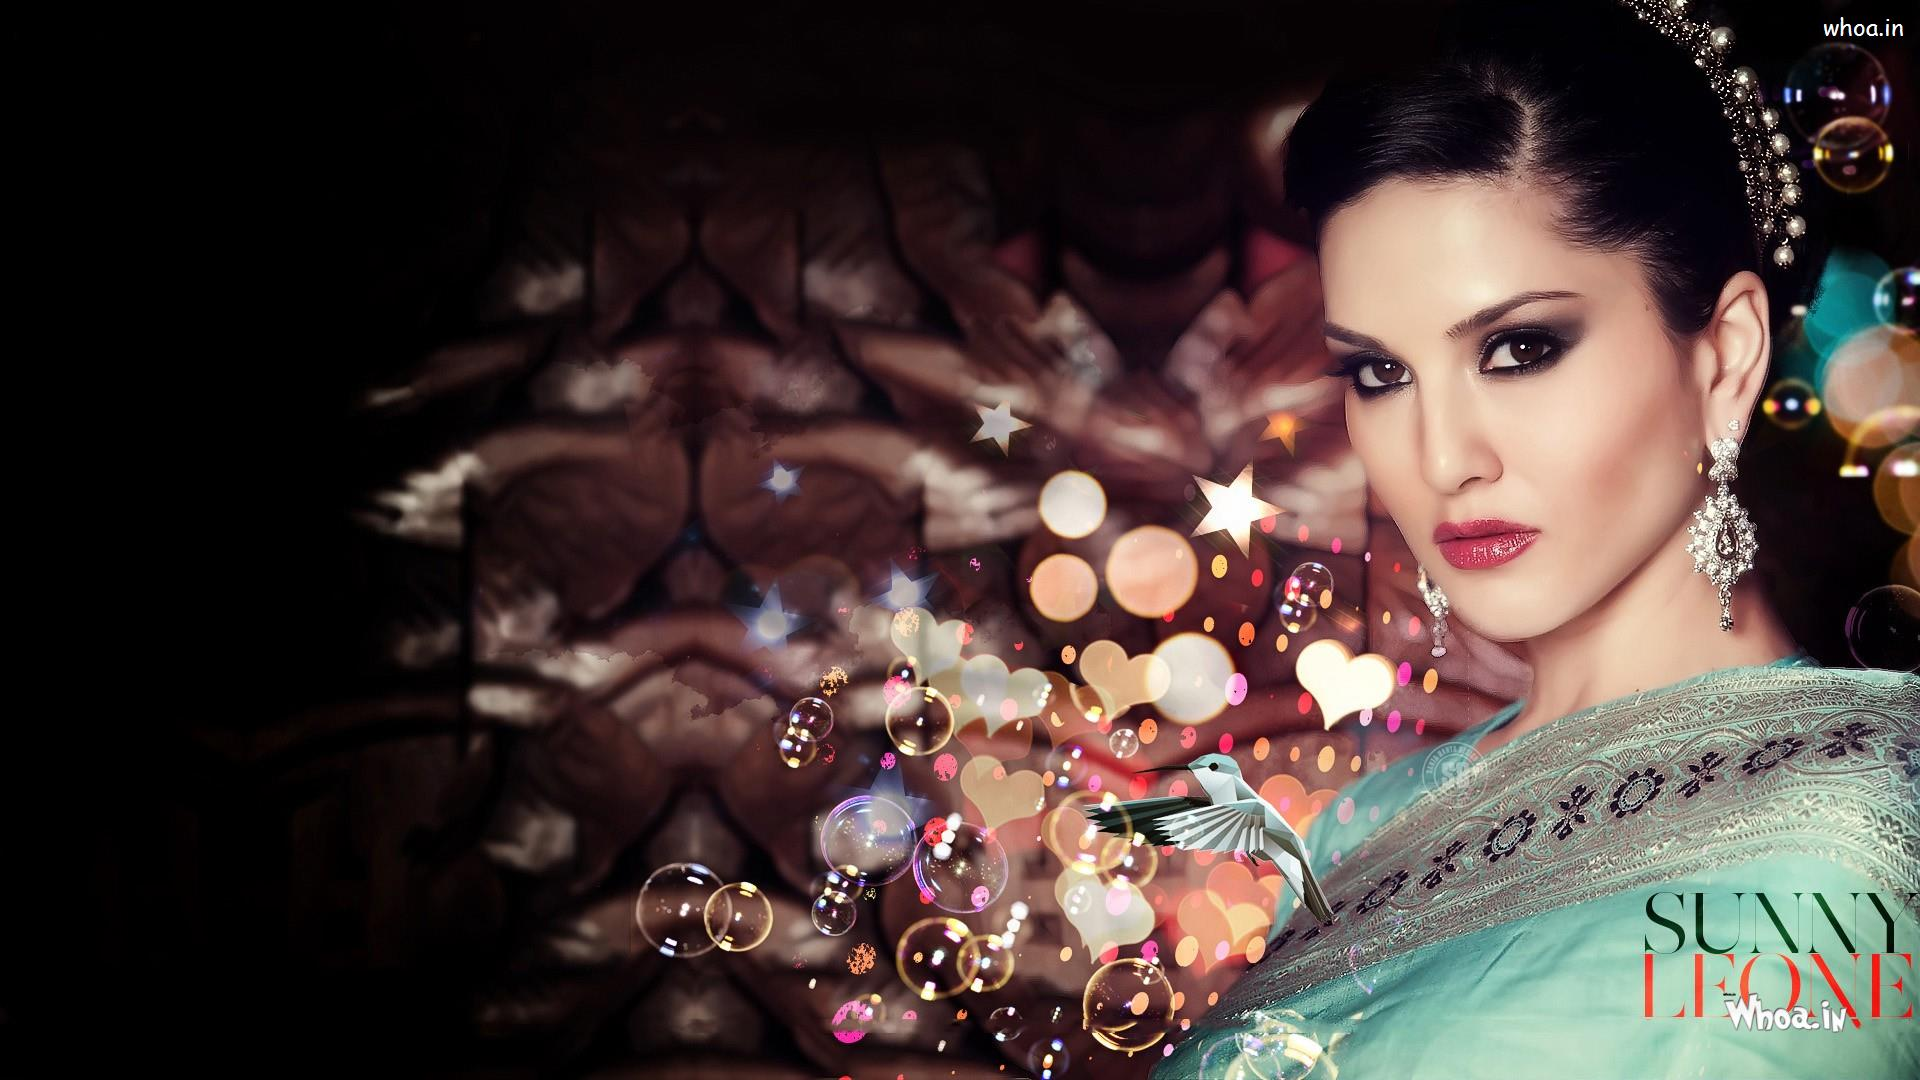 sunny leone hd wallpaper in saree